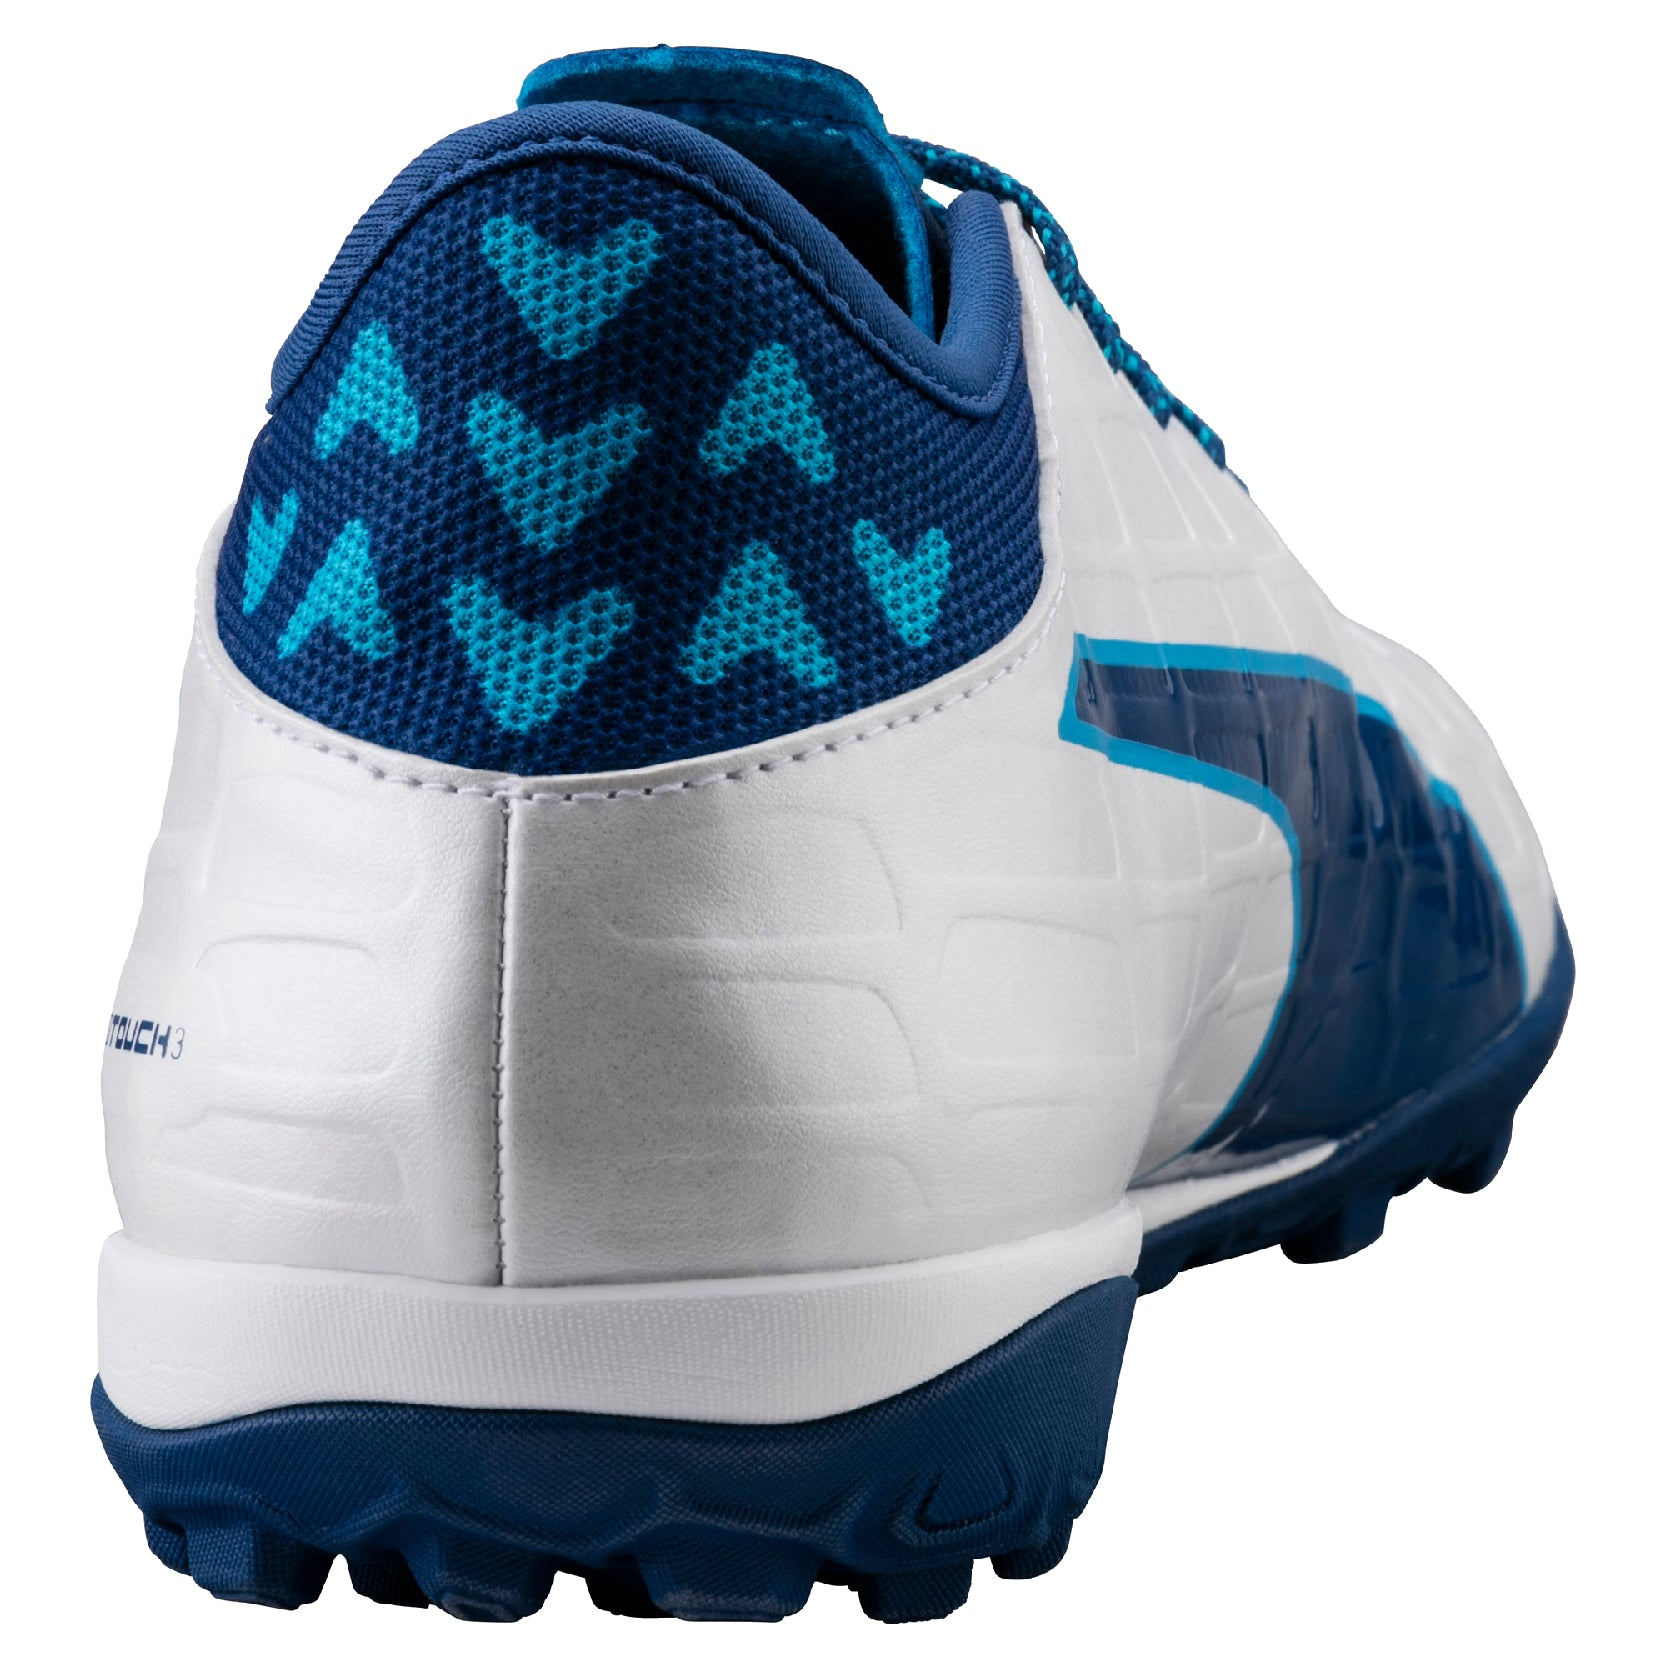 Men's Puma evoTOUCH 3 Turf Football Boot